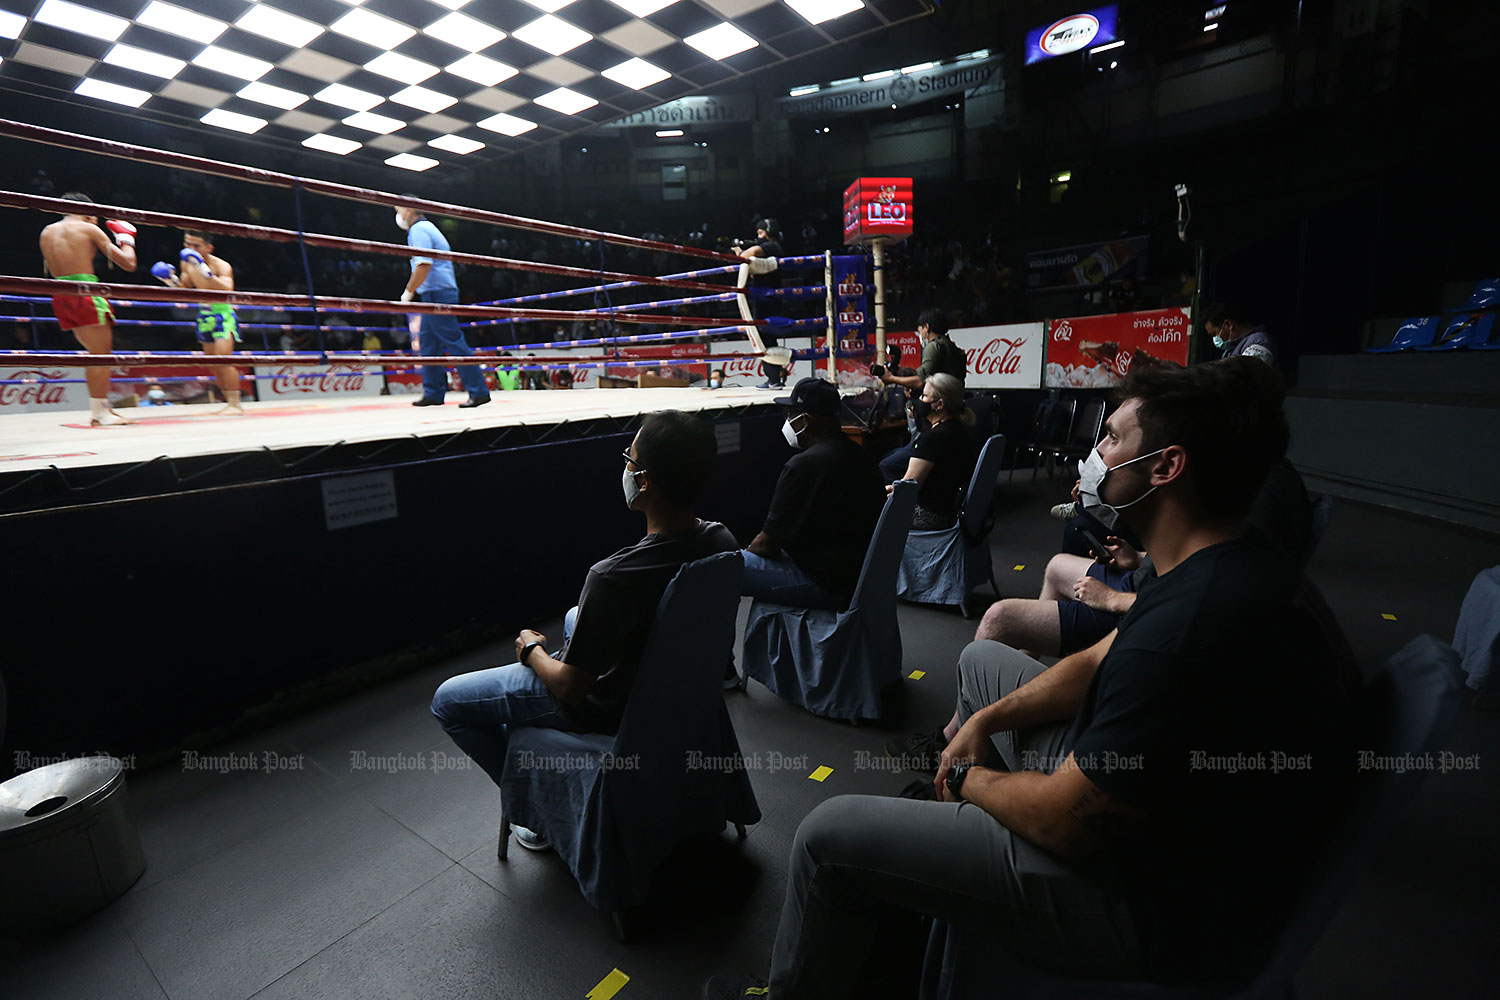 Safer boxing: Staff use disinfectant sprays to clean the arena at the Ratchadamnoen boxing ring in Bangkok yesterday. Spectators watching the match are also spaced apart in keeping with social distancing rules. Public health safety measures have been stepped up in recent days after the resurgence of Covid-19 in some provinces triggered by imported infections through Chiang Rai. (Photos by Varuth Hirunyatheb)